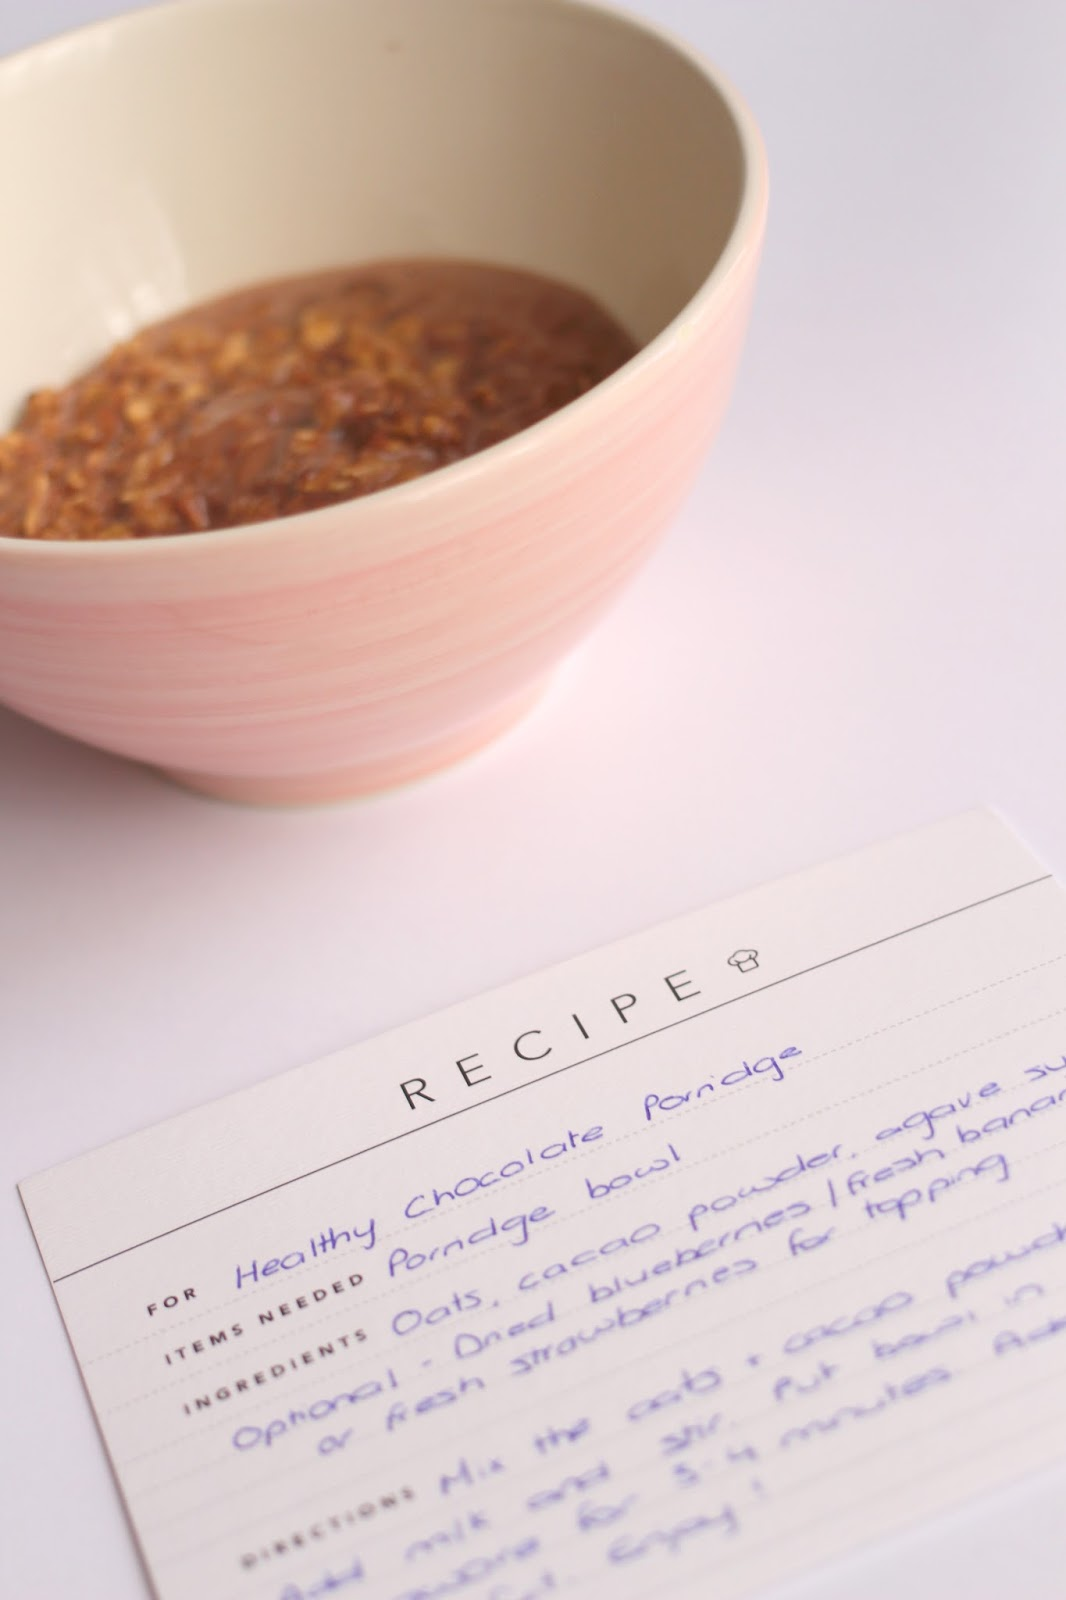 Healthy Chocolate Porridge Recipe